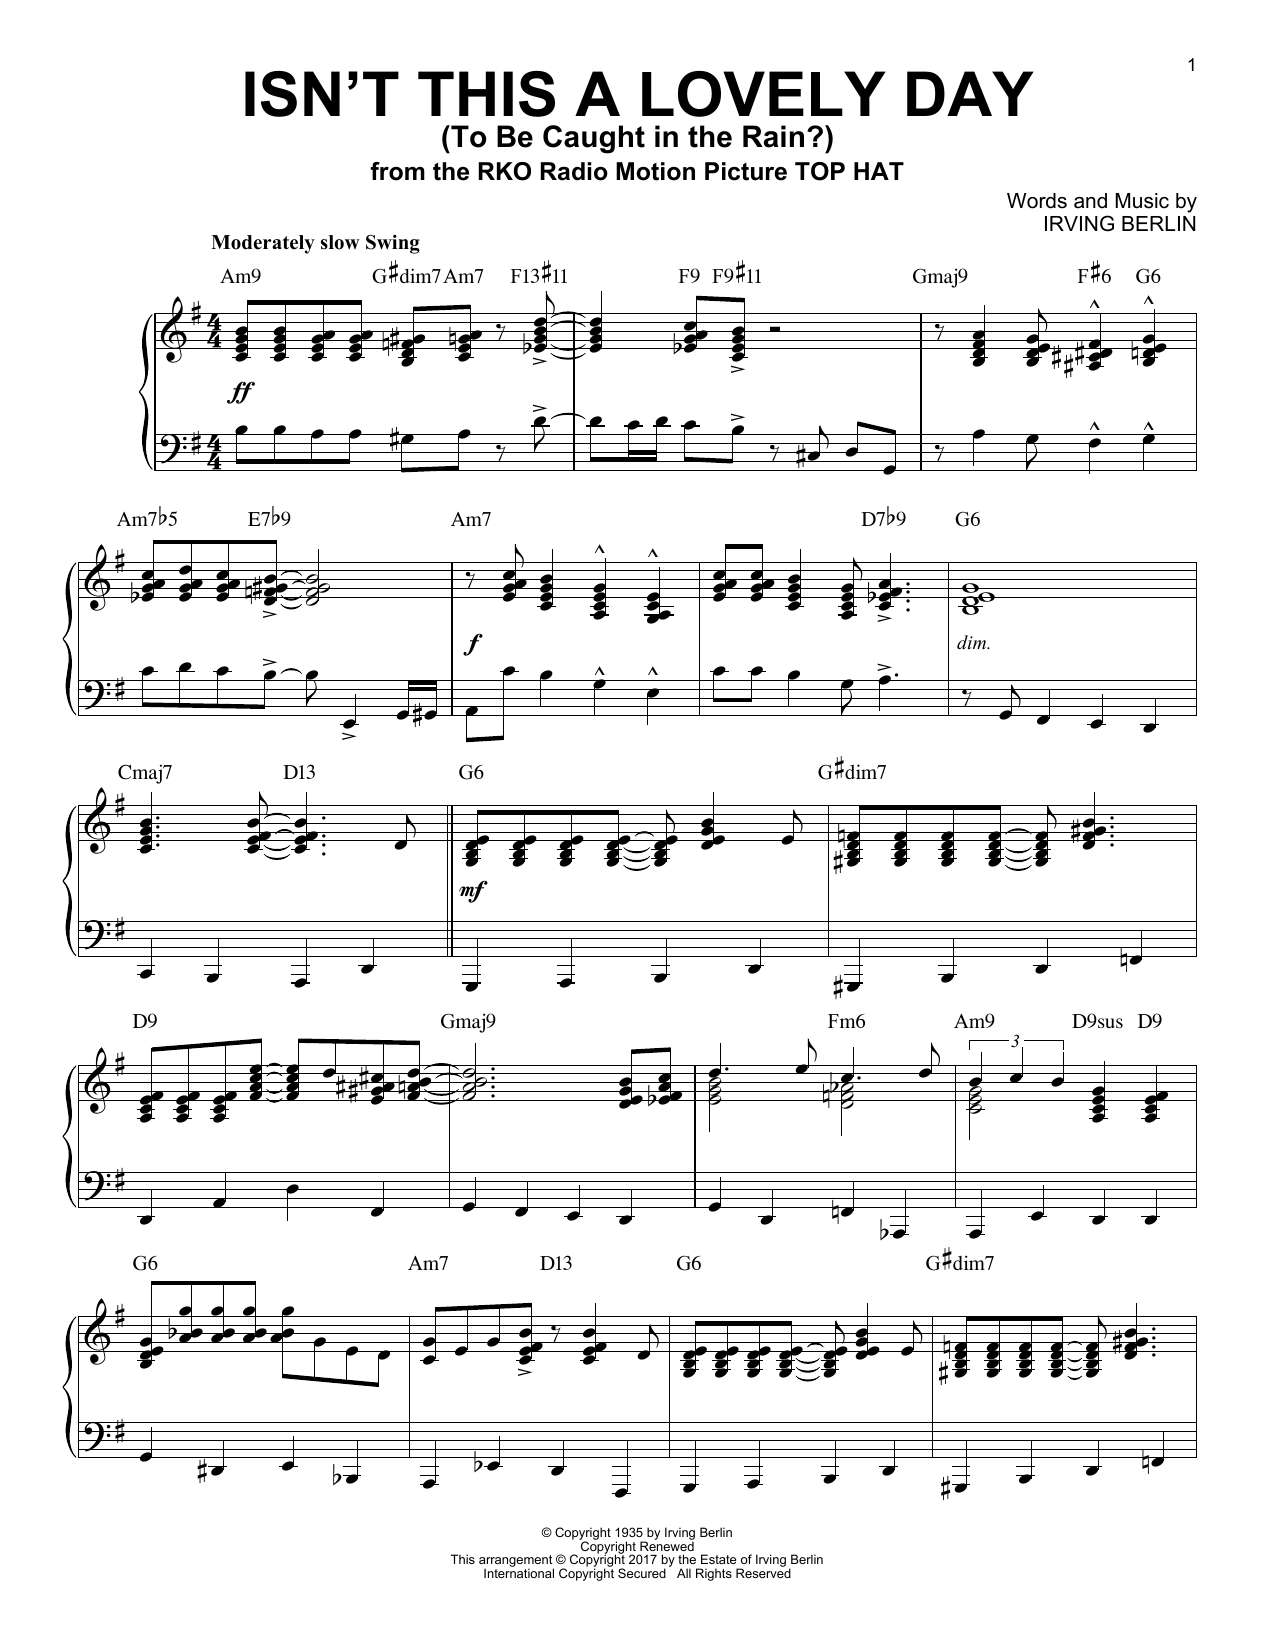 Irving Berlin Isn't This A Lovely Day (To Be Caught In The Rain?) [Jazz version] sheet music notes and chords. Download Printable PDF.